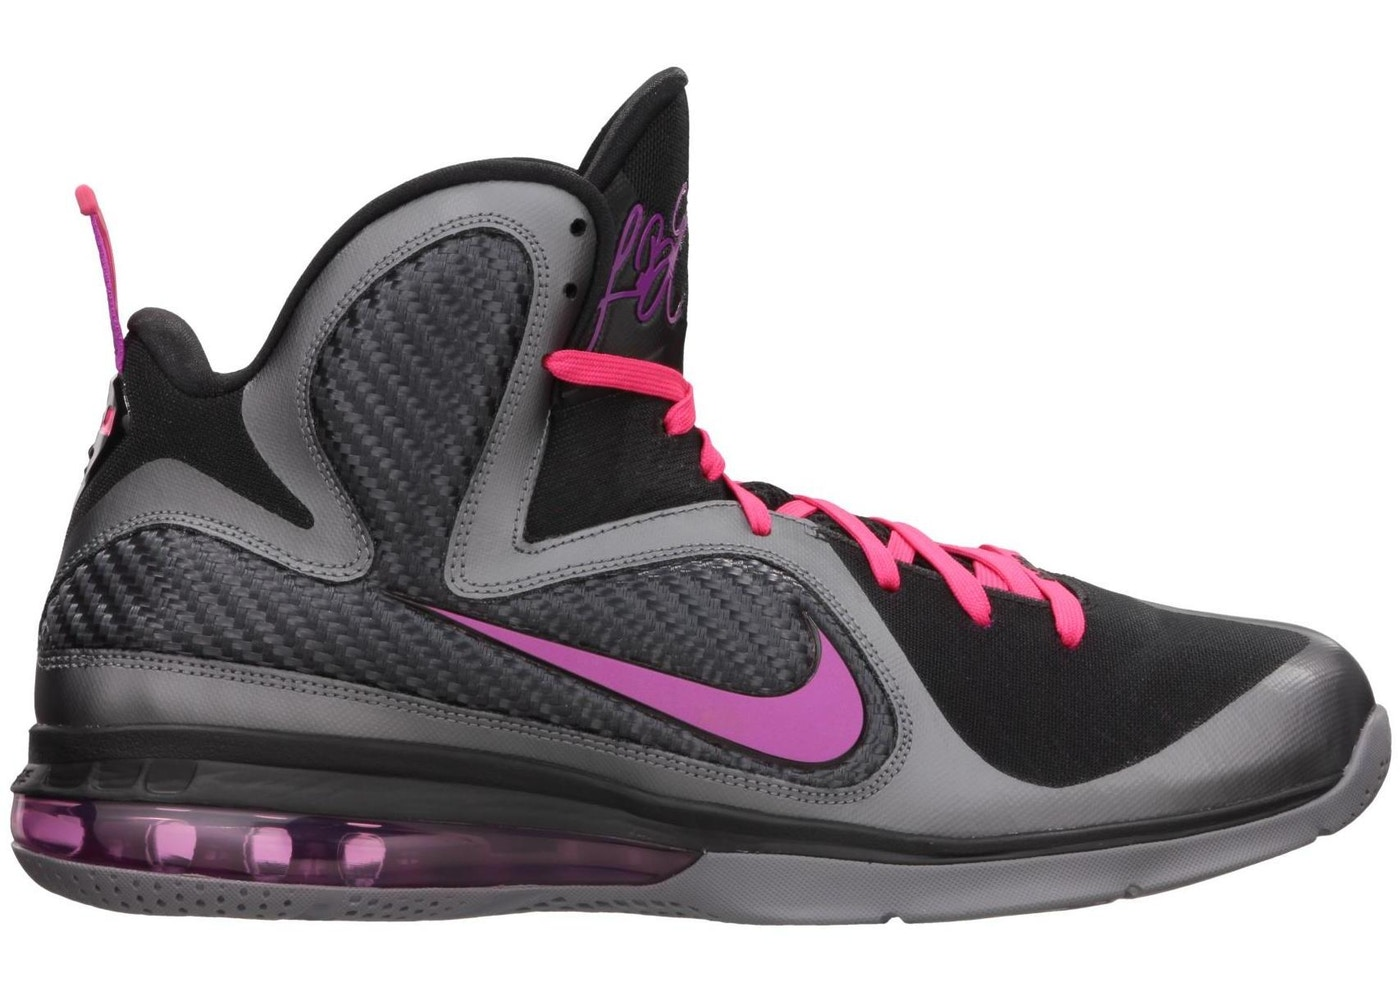 purchase cheap 6c331 8245b LeBron 9 Miami Nights - 469764-002